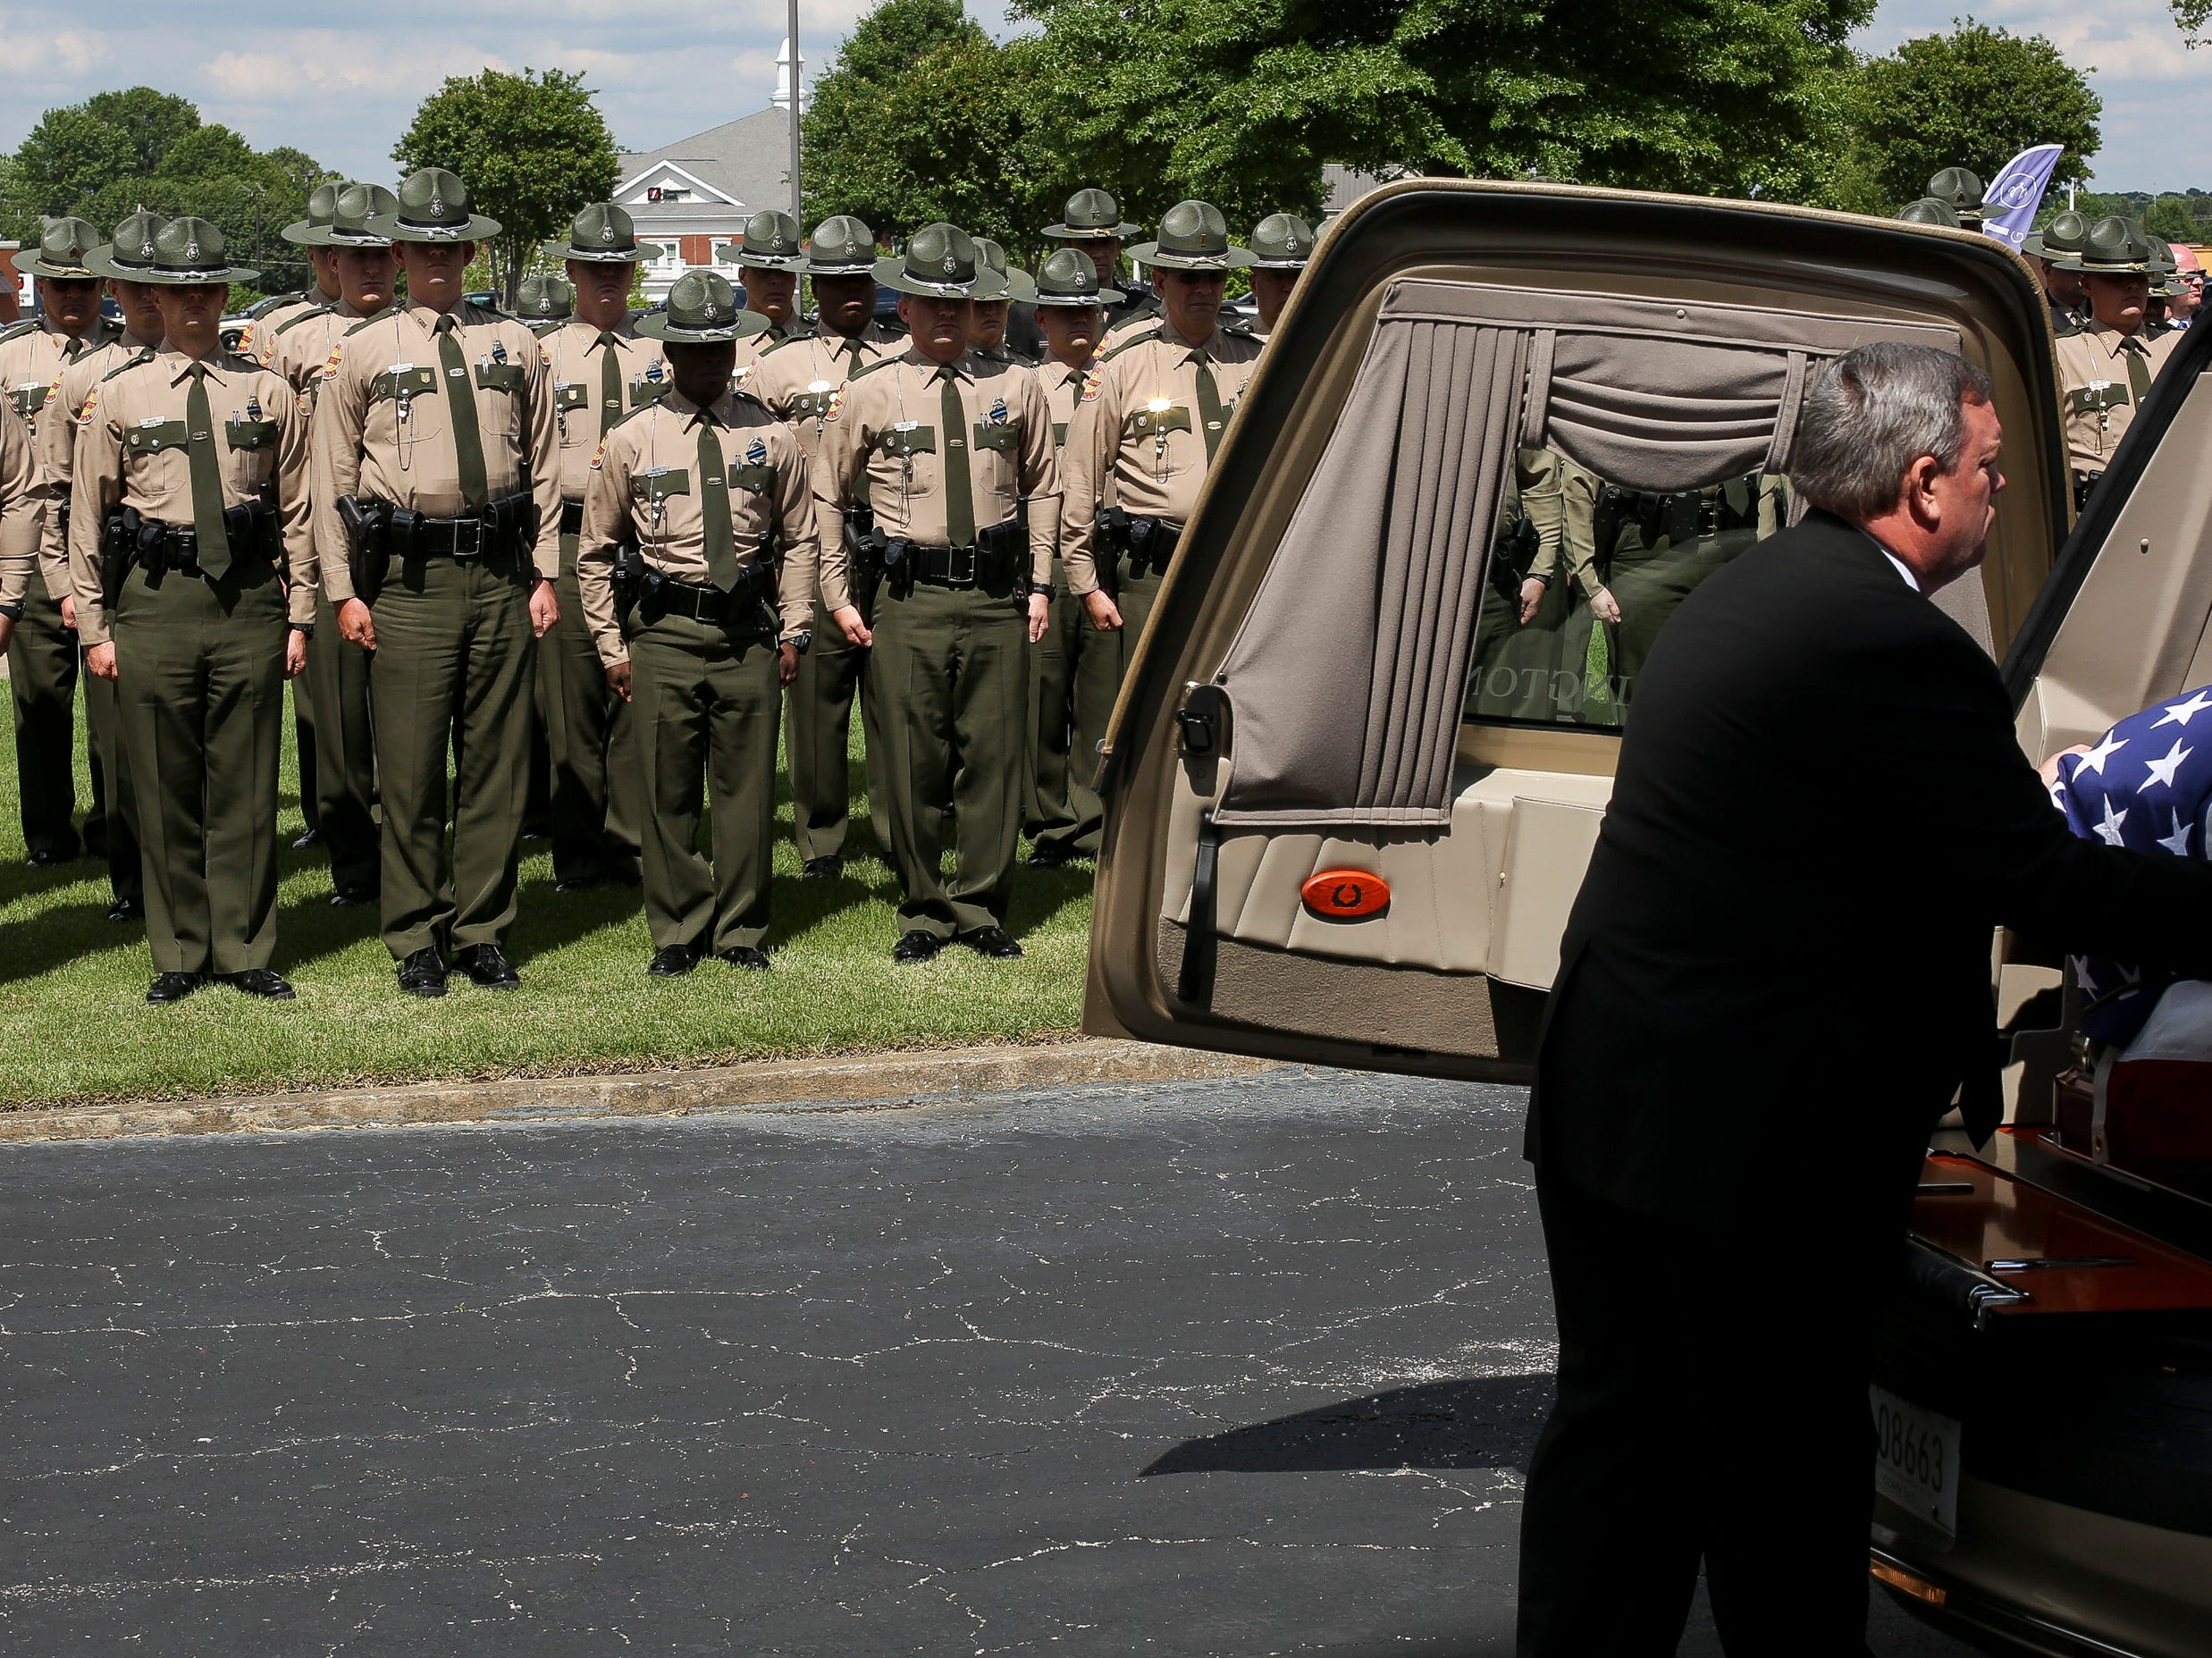 The casket is placed in the hearse after the funeral service for Tennessee State Trooper Matthew Gatti at West Jackson Baptist Church in Jackson, Tenn., Monday, May 13, 2019. Gatti died in the line of duty in an accident while responding to a car fire on I-40 in Madison County on May 6.